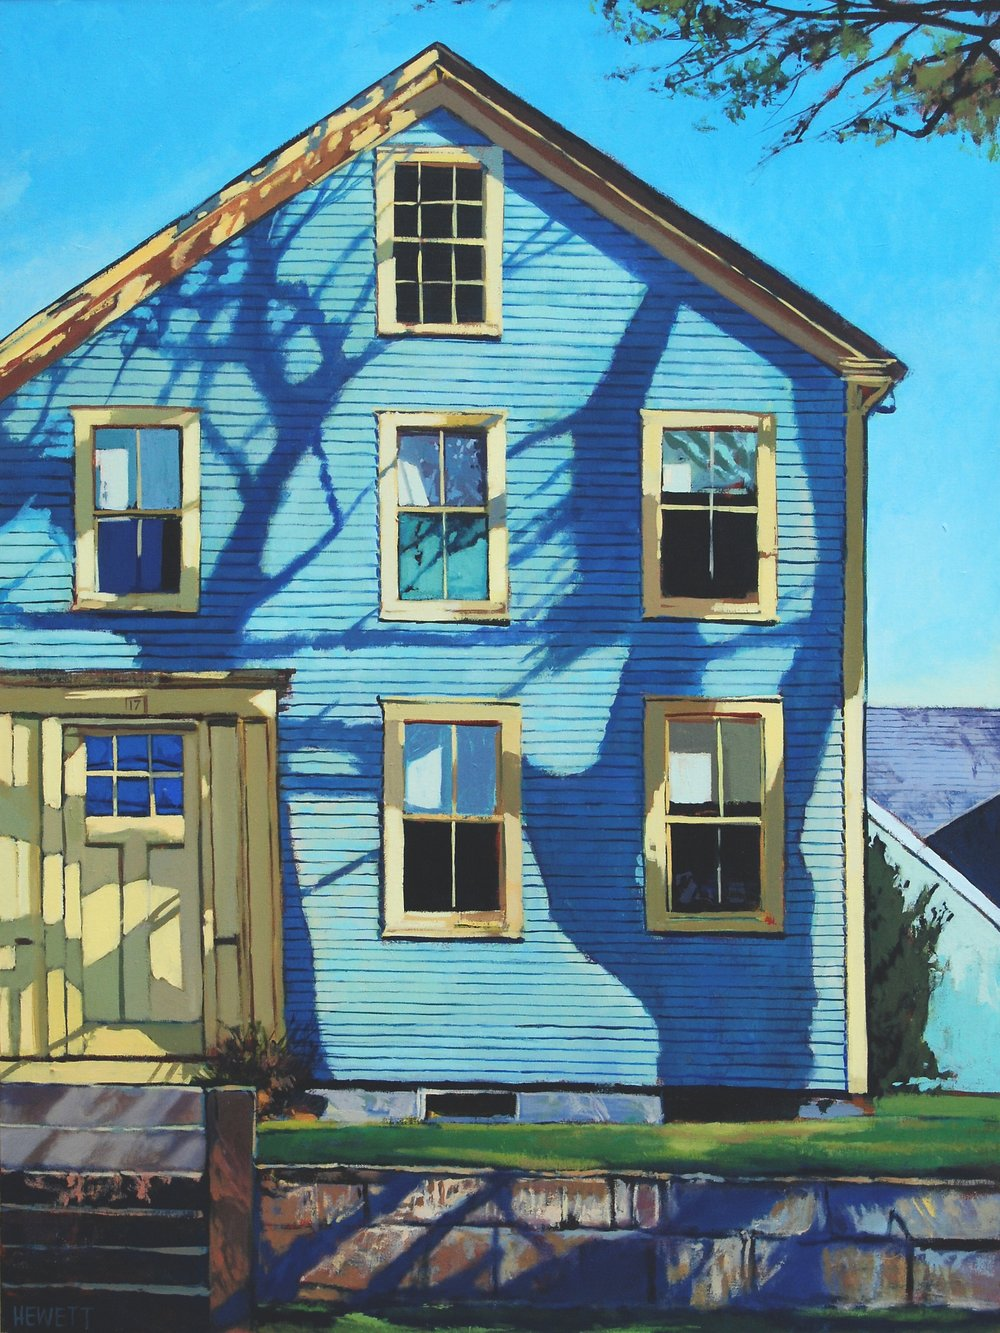 Blue House - Woods Hole